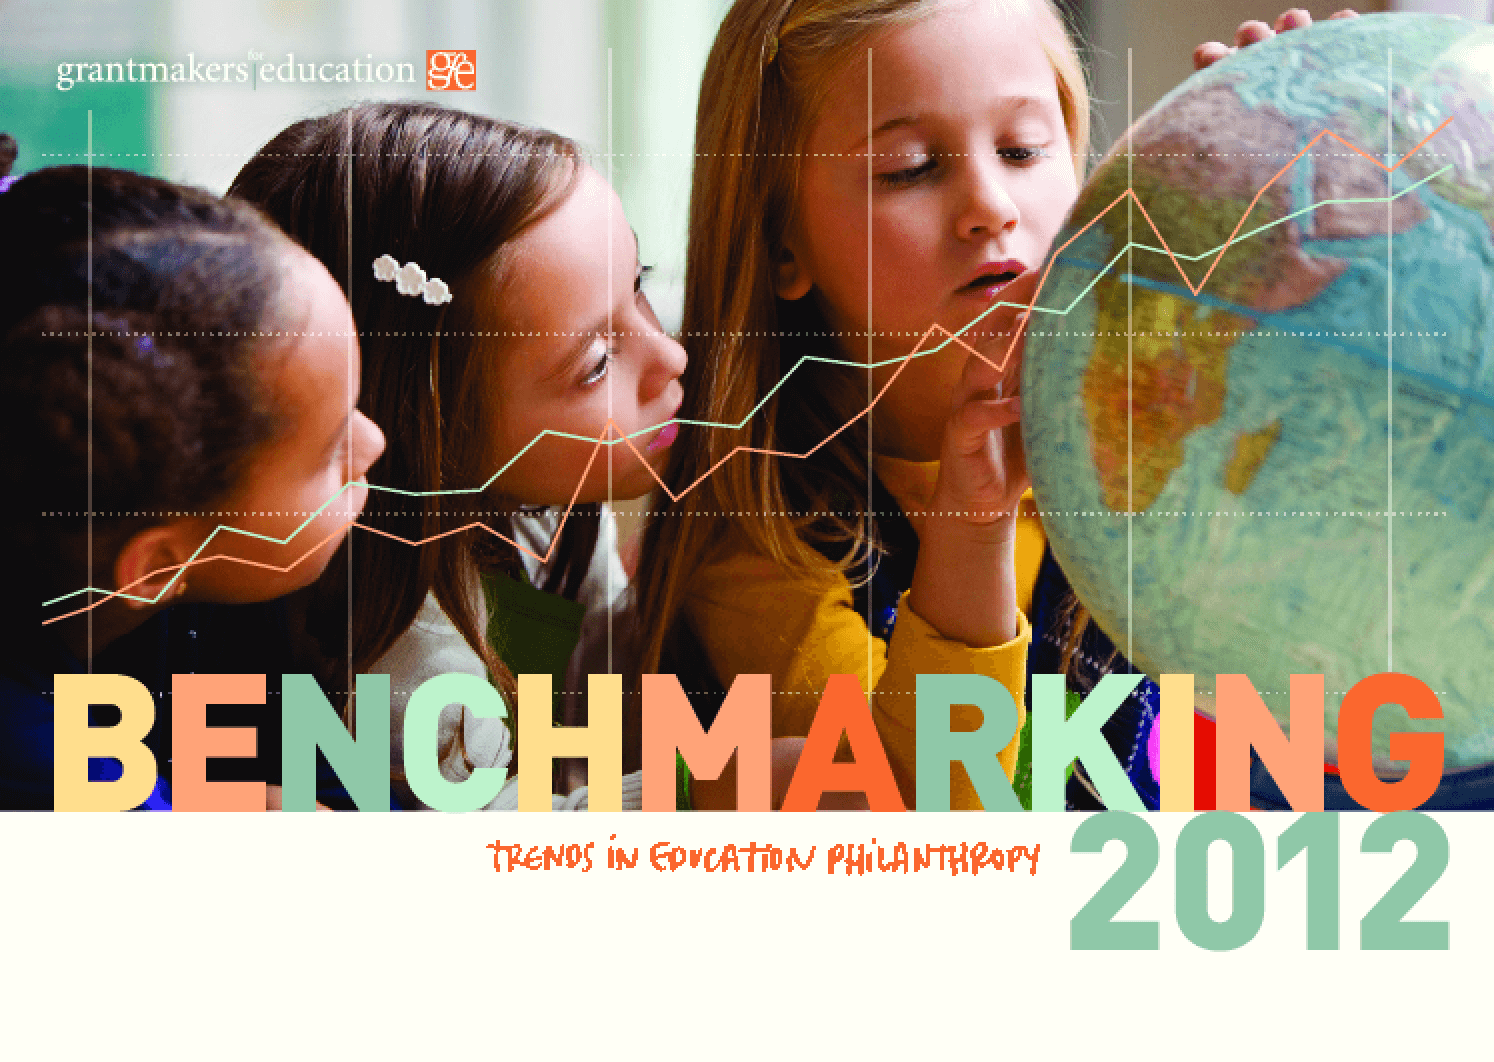 Benchmarking 2012: Trends in Education Philanthropy